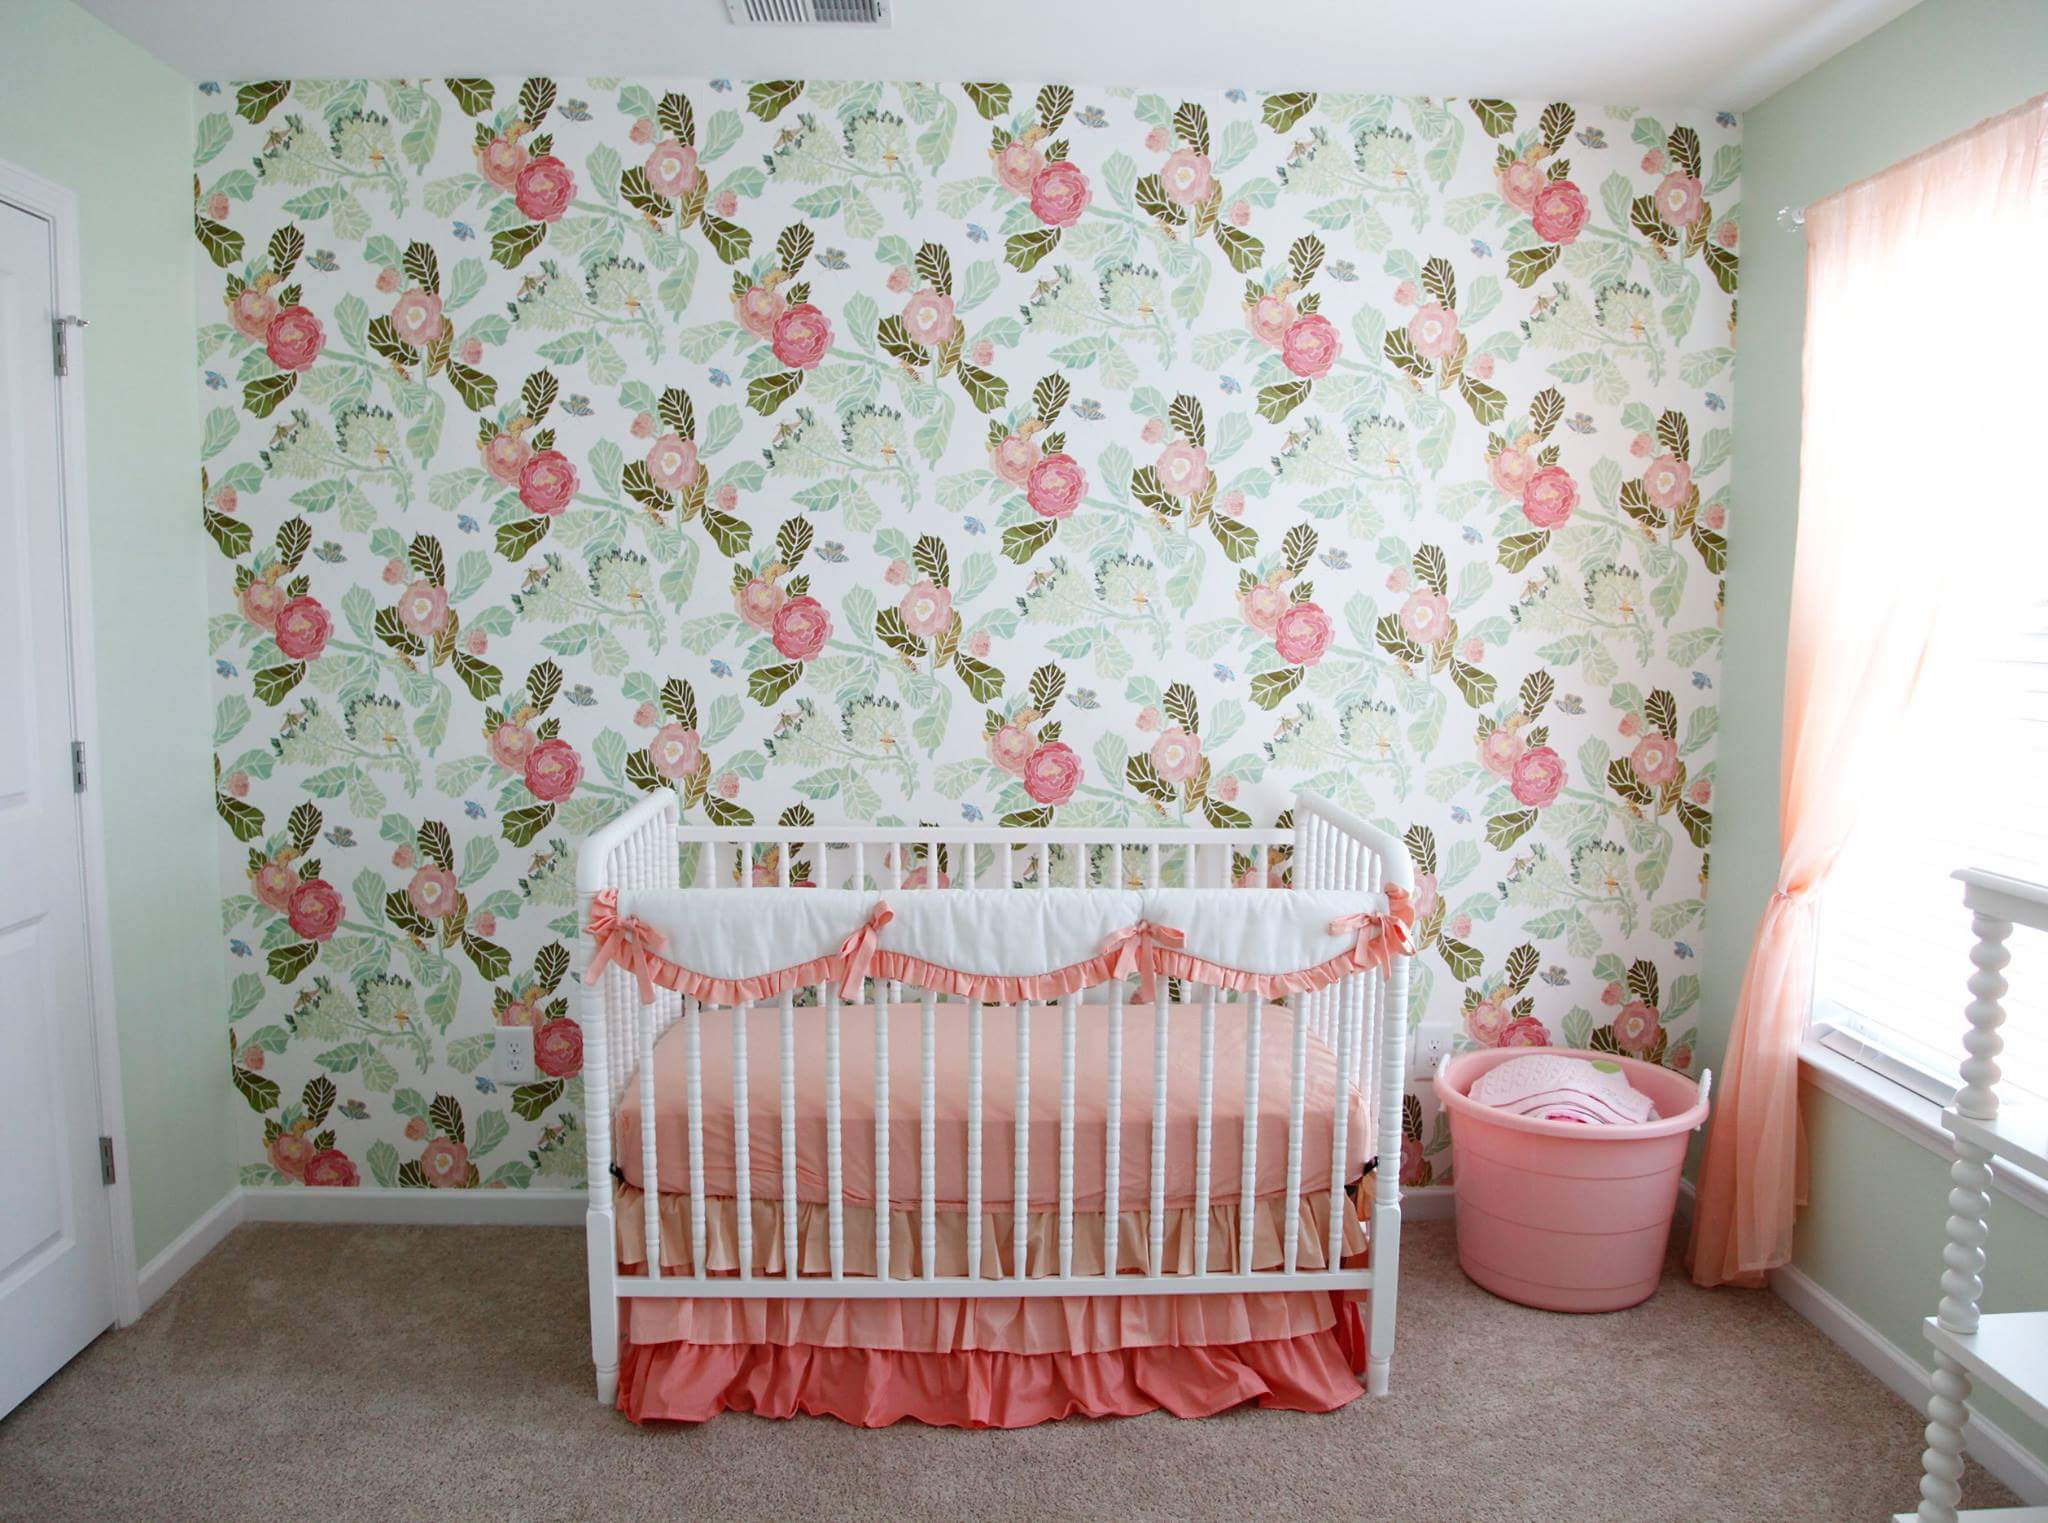 Hannahs Baby Room Sweet Nursery Ideas Girls coral baby bedding floral wallpaper jenny lind white crib